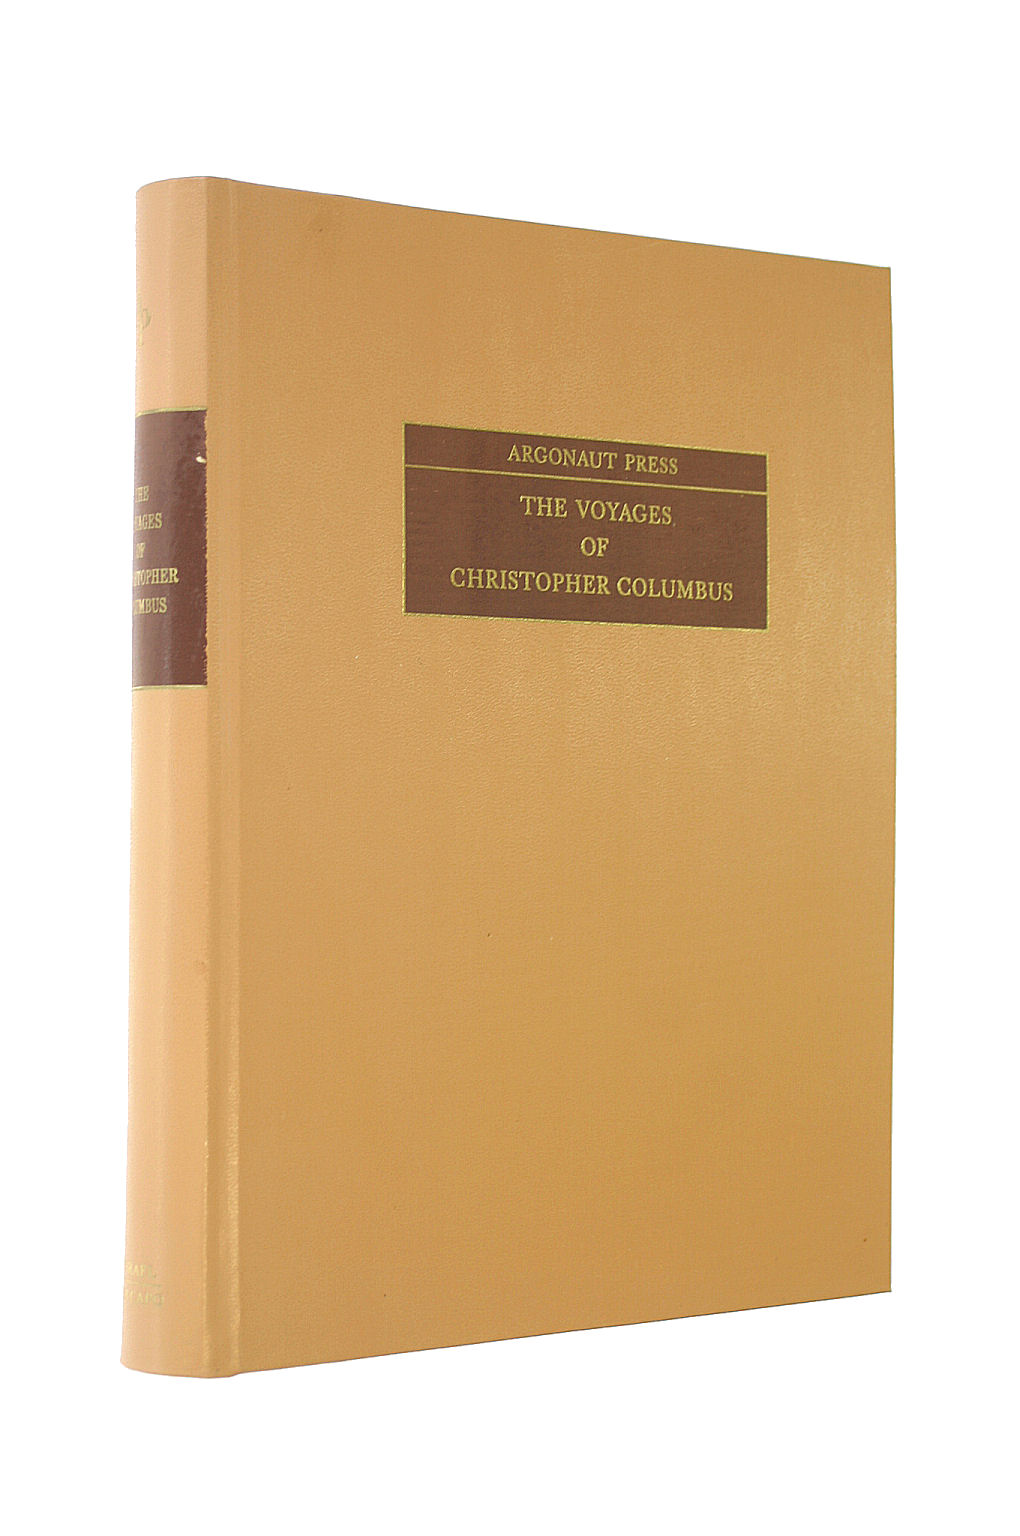 Image for The voyages of Christopher Columbus [Being the journals of his first and third and the letters concerning his first and last voyages to which is added ... his second voyage written by Andres Bernaldez